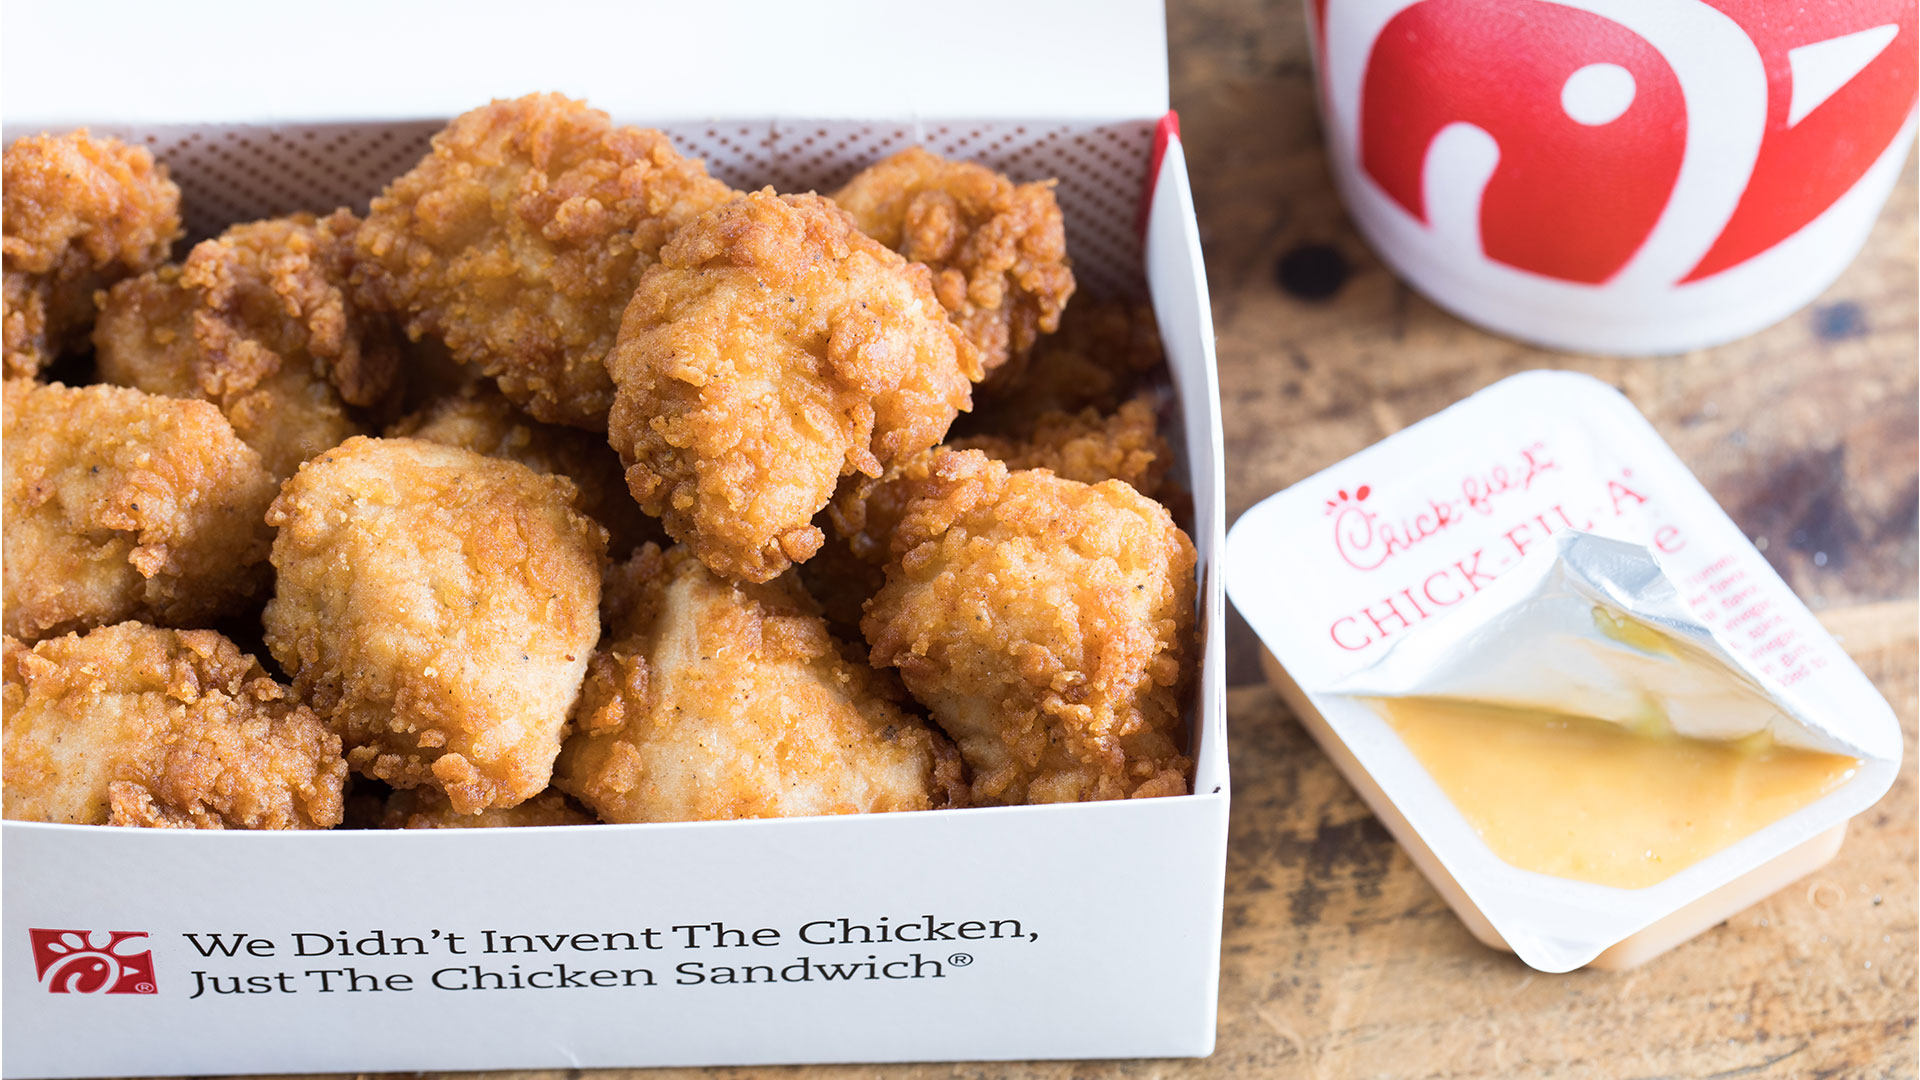 Chick-fil-A Free Nuggets